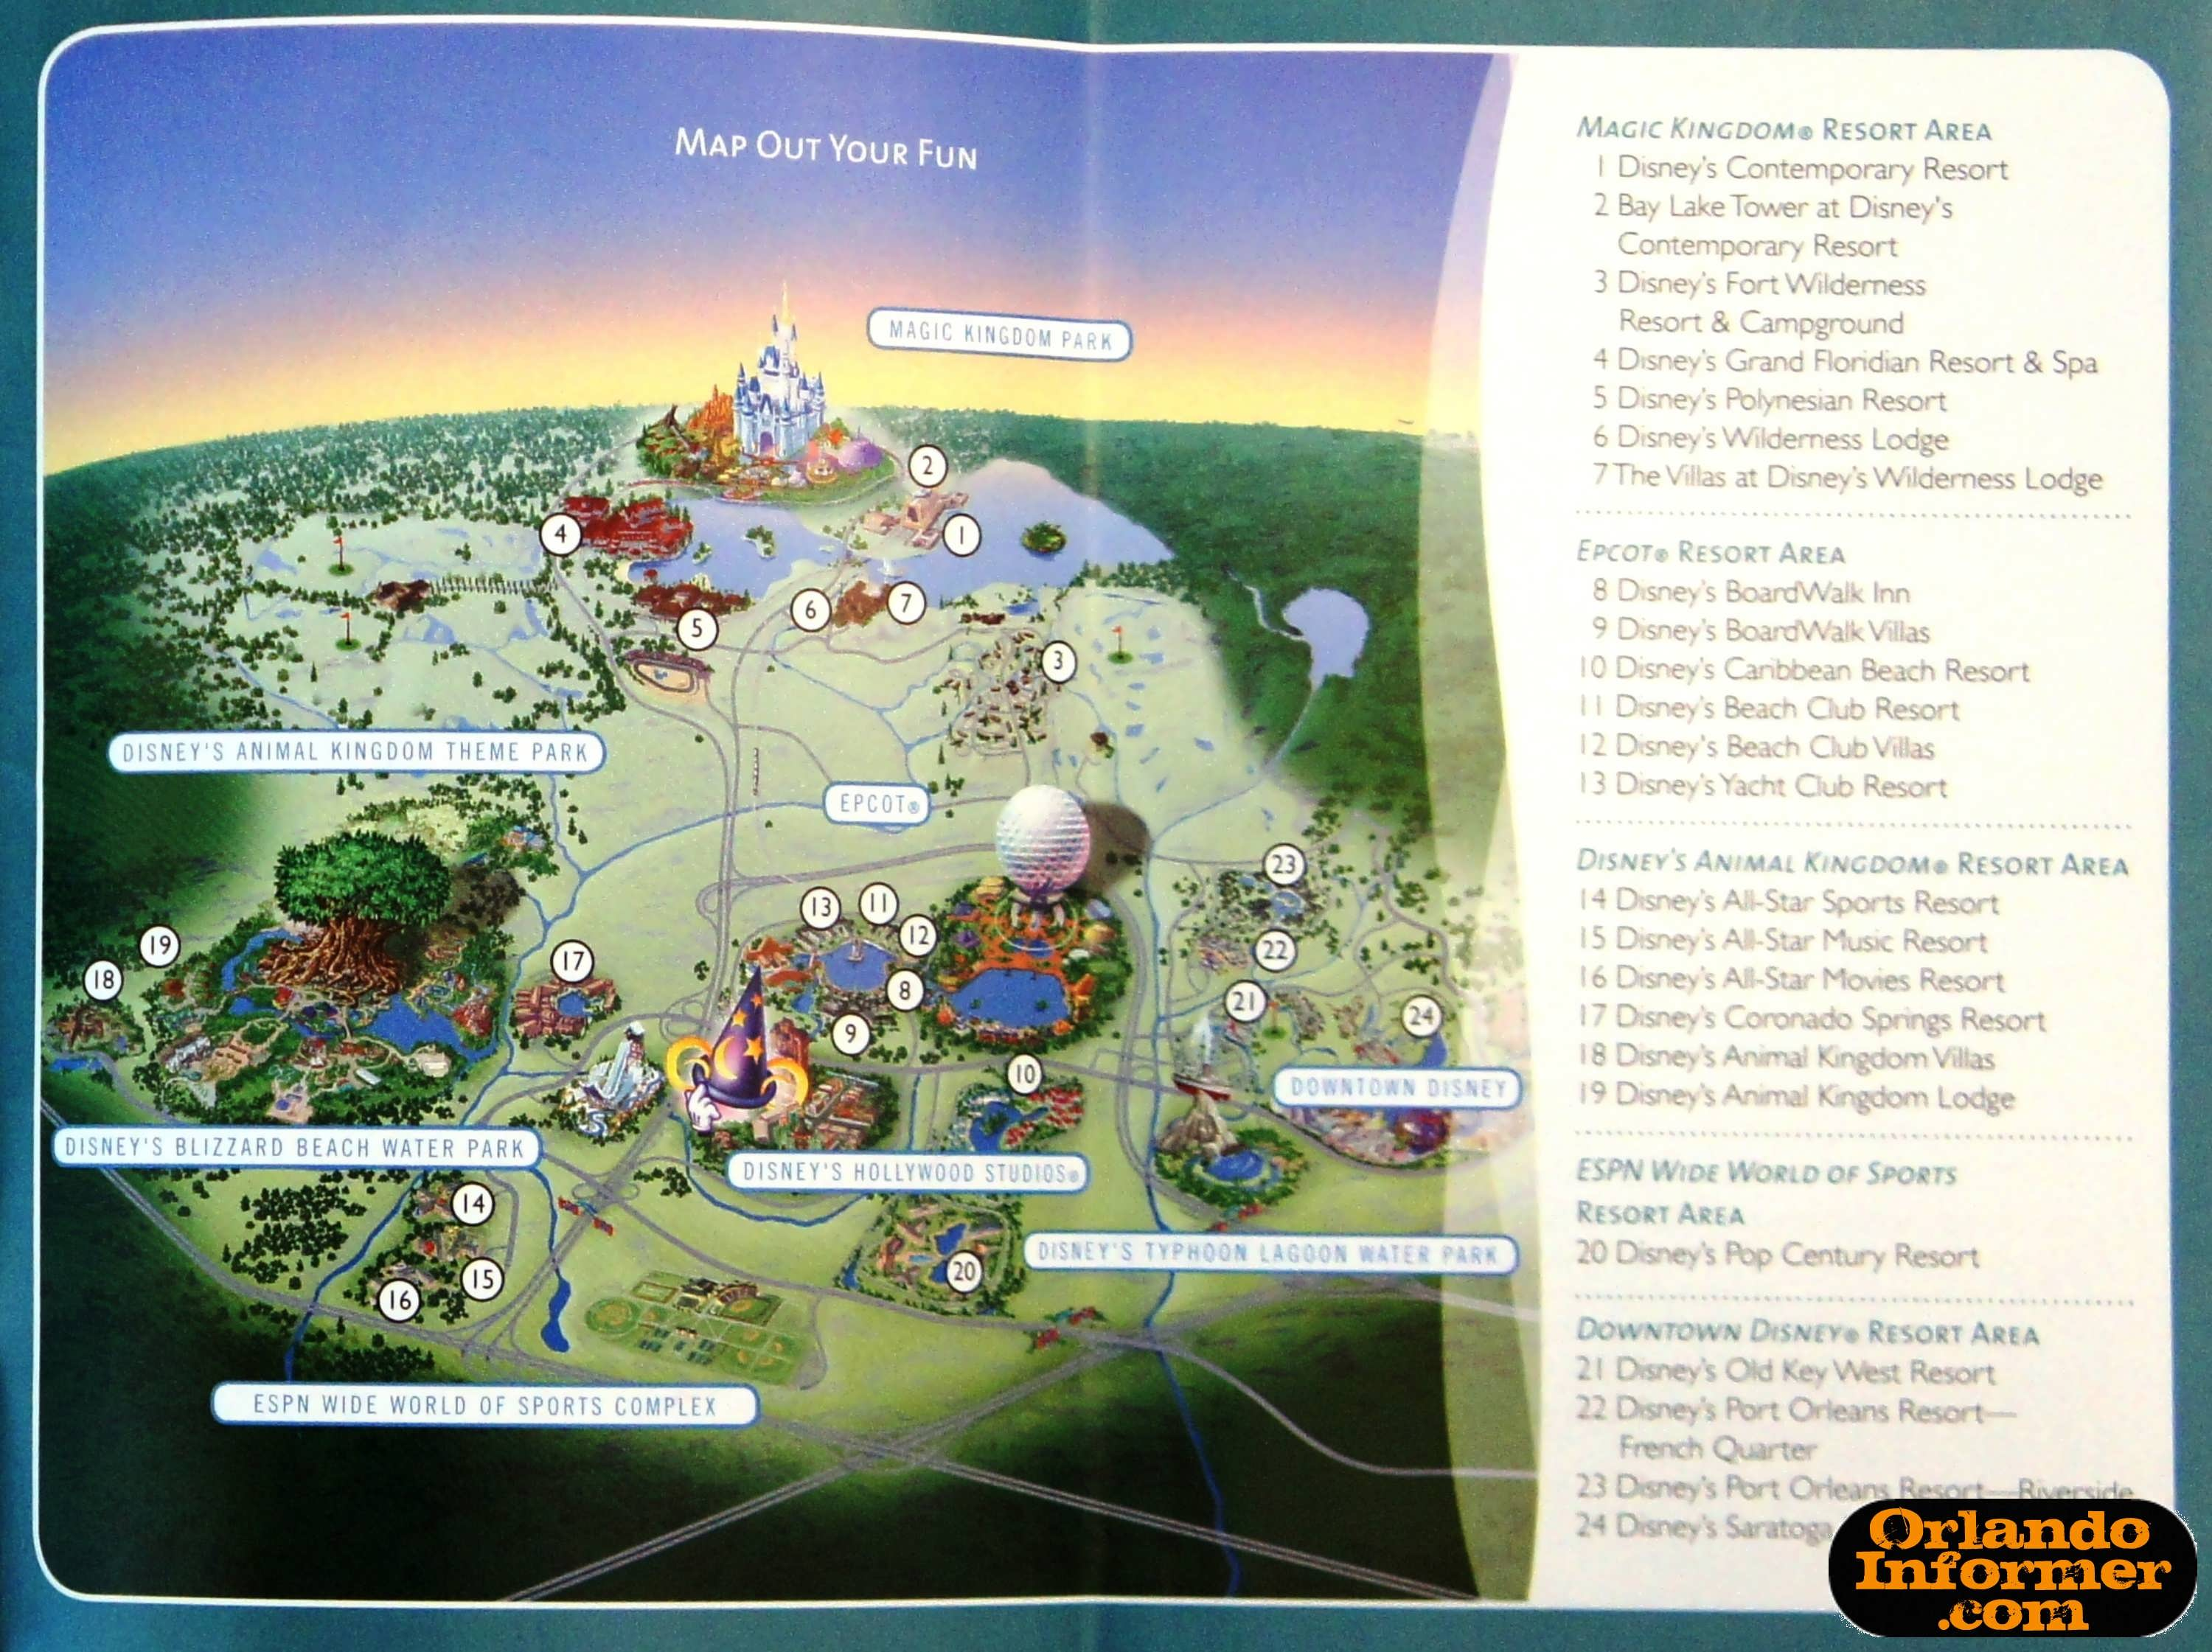 2011 Walt Disney World vacation brochure: Let the memories begin! Disney World Hollywood Studios Map on